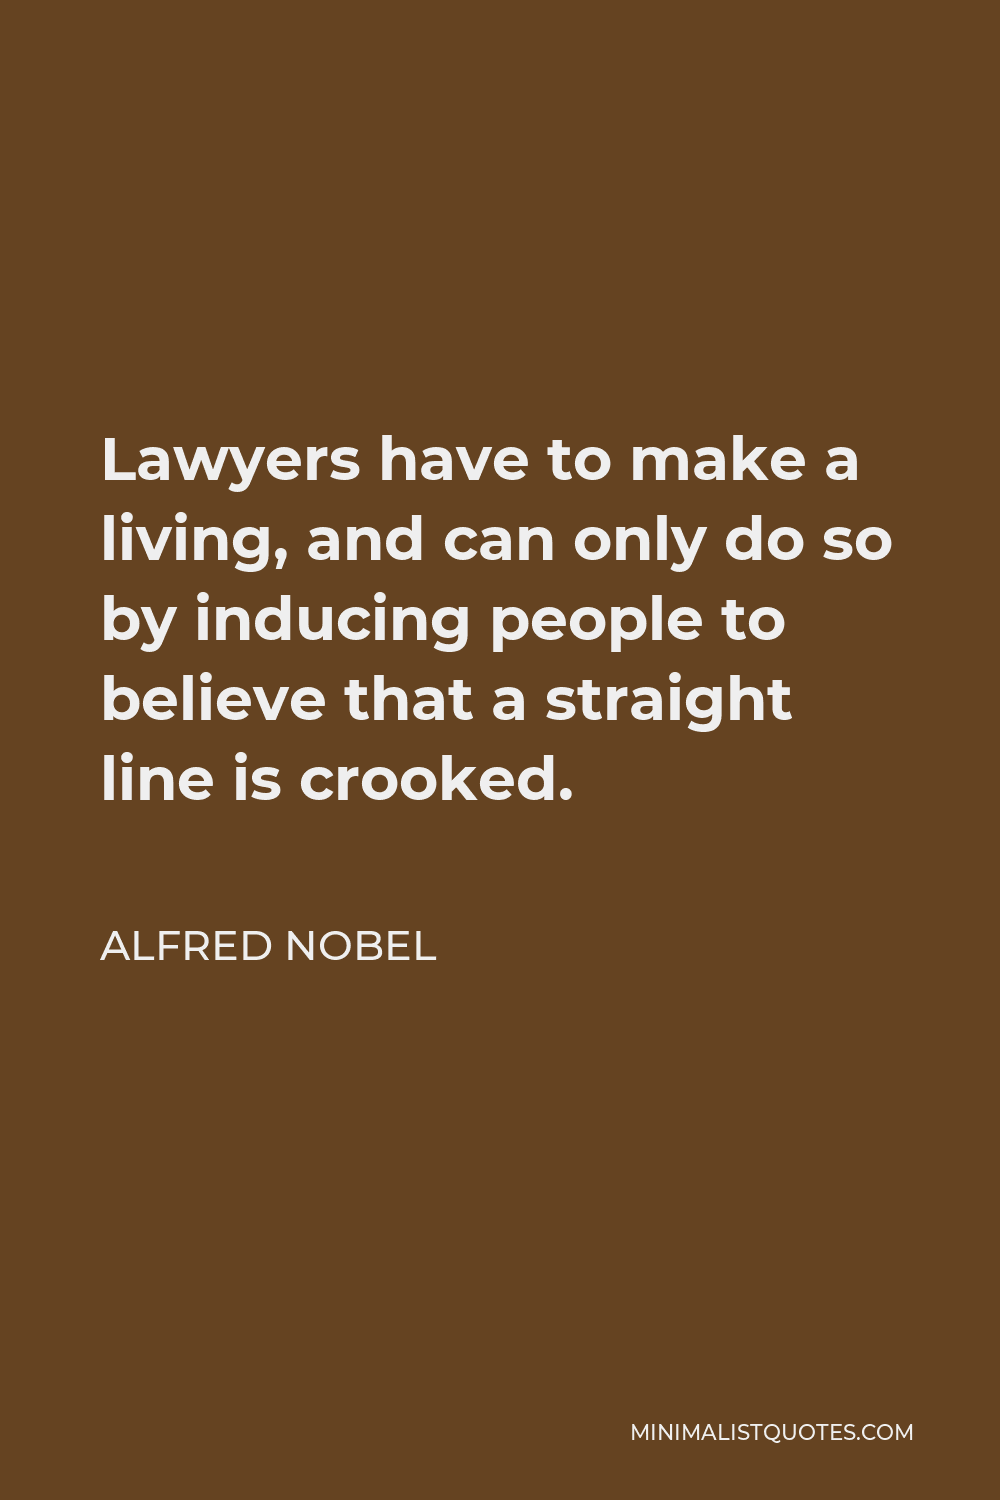 Alfred Nobel Quote - Lawyers have to make a living, and can only do so by inducing people to believe that a straight line is crooked.